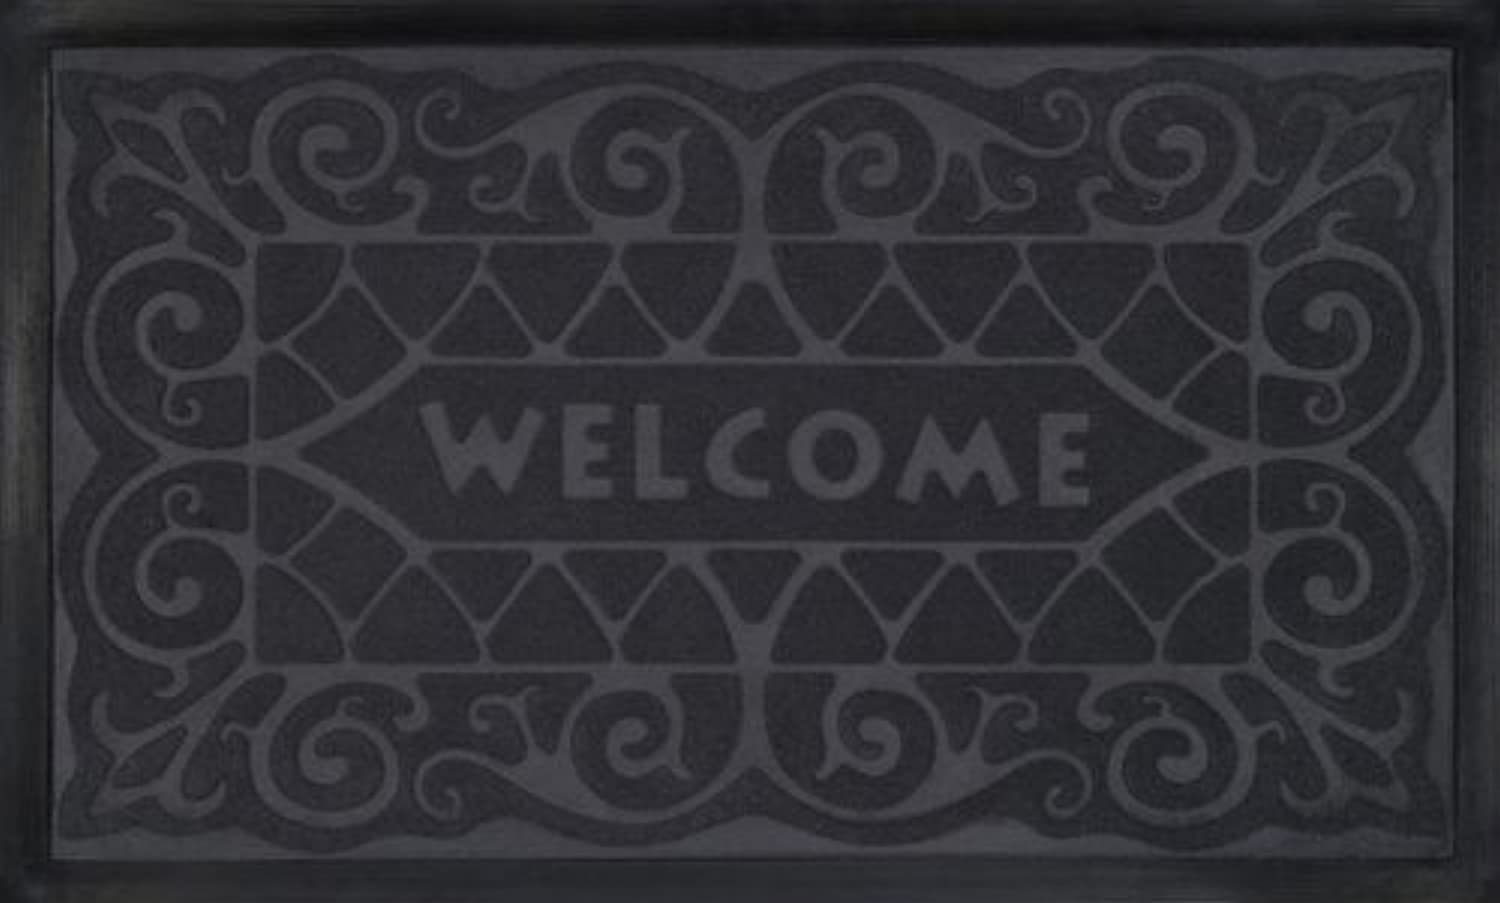 Ben&Jonah Collection Welcome Mat 18x30 Wrought Iron - Grey